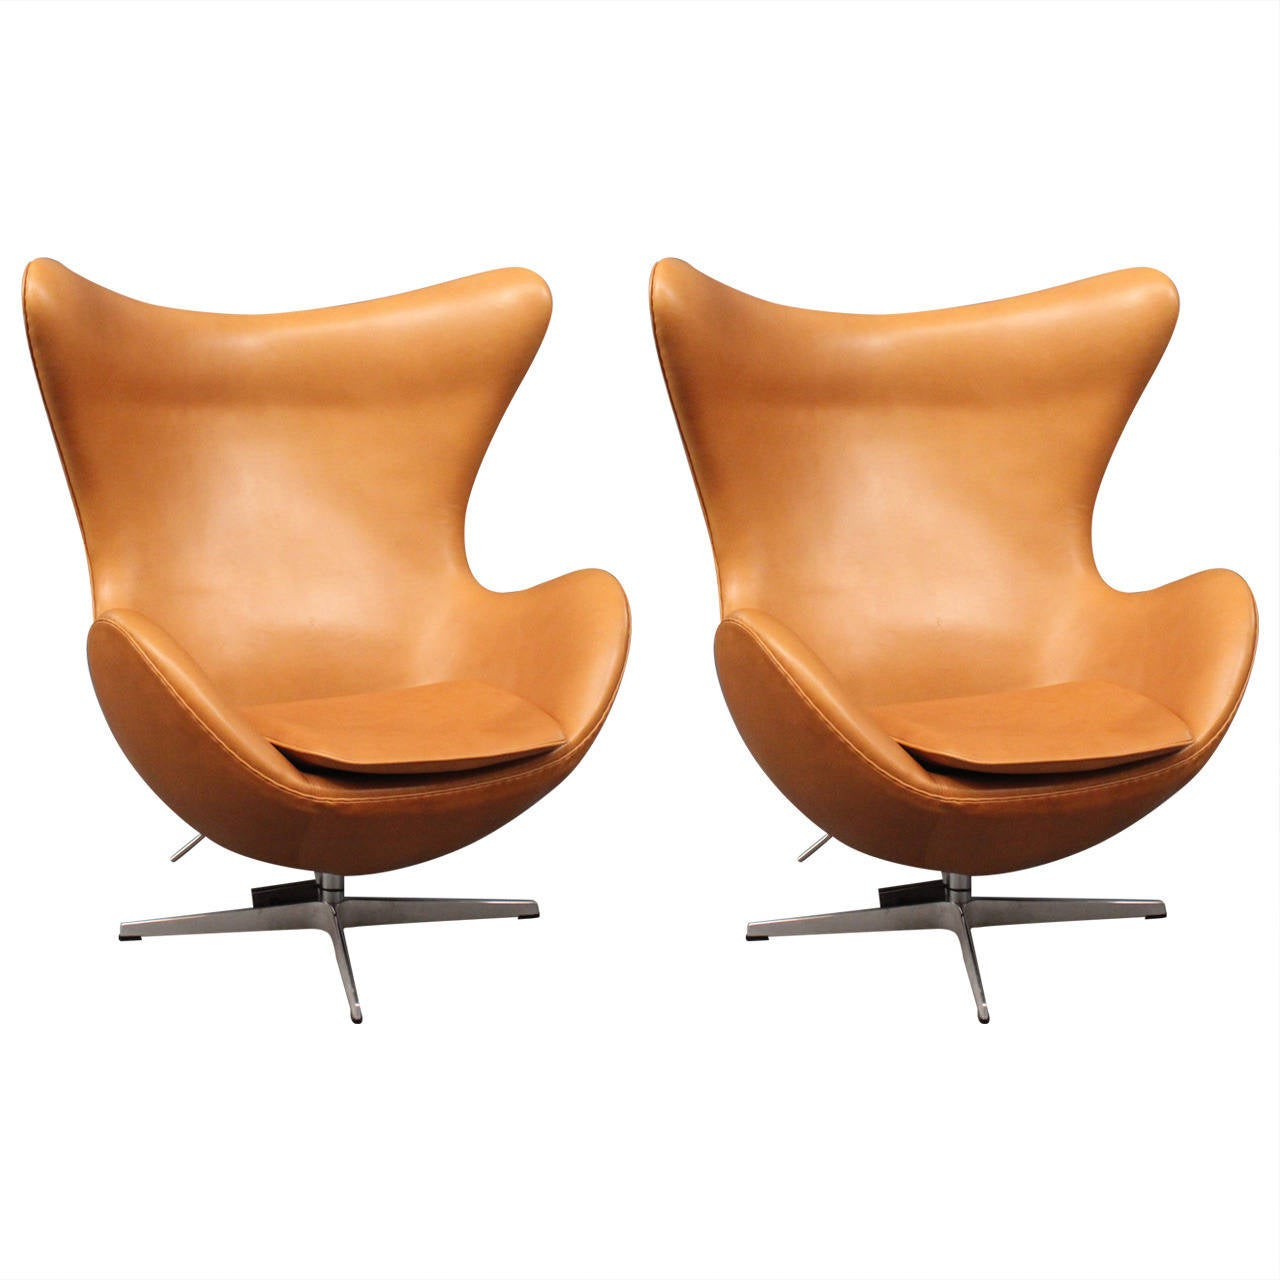 Egg chair designed by arne jacobsen 1958 manufactured for Egg chair jacobsen